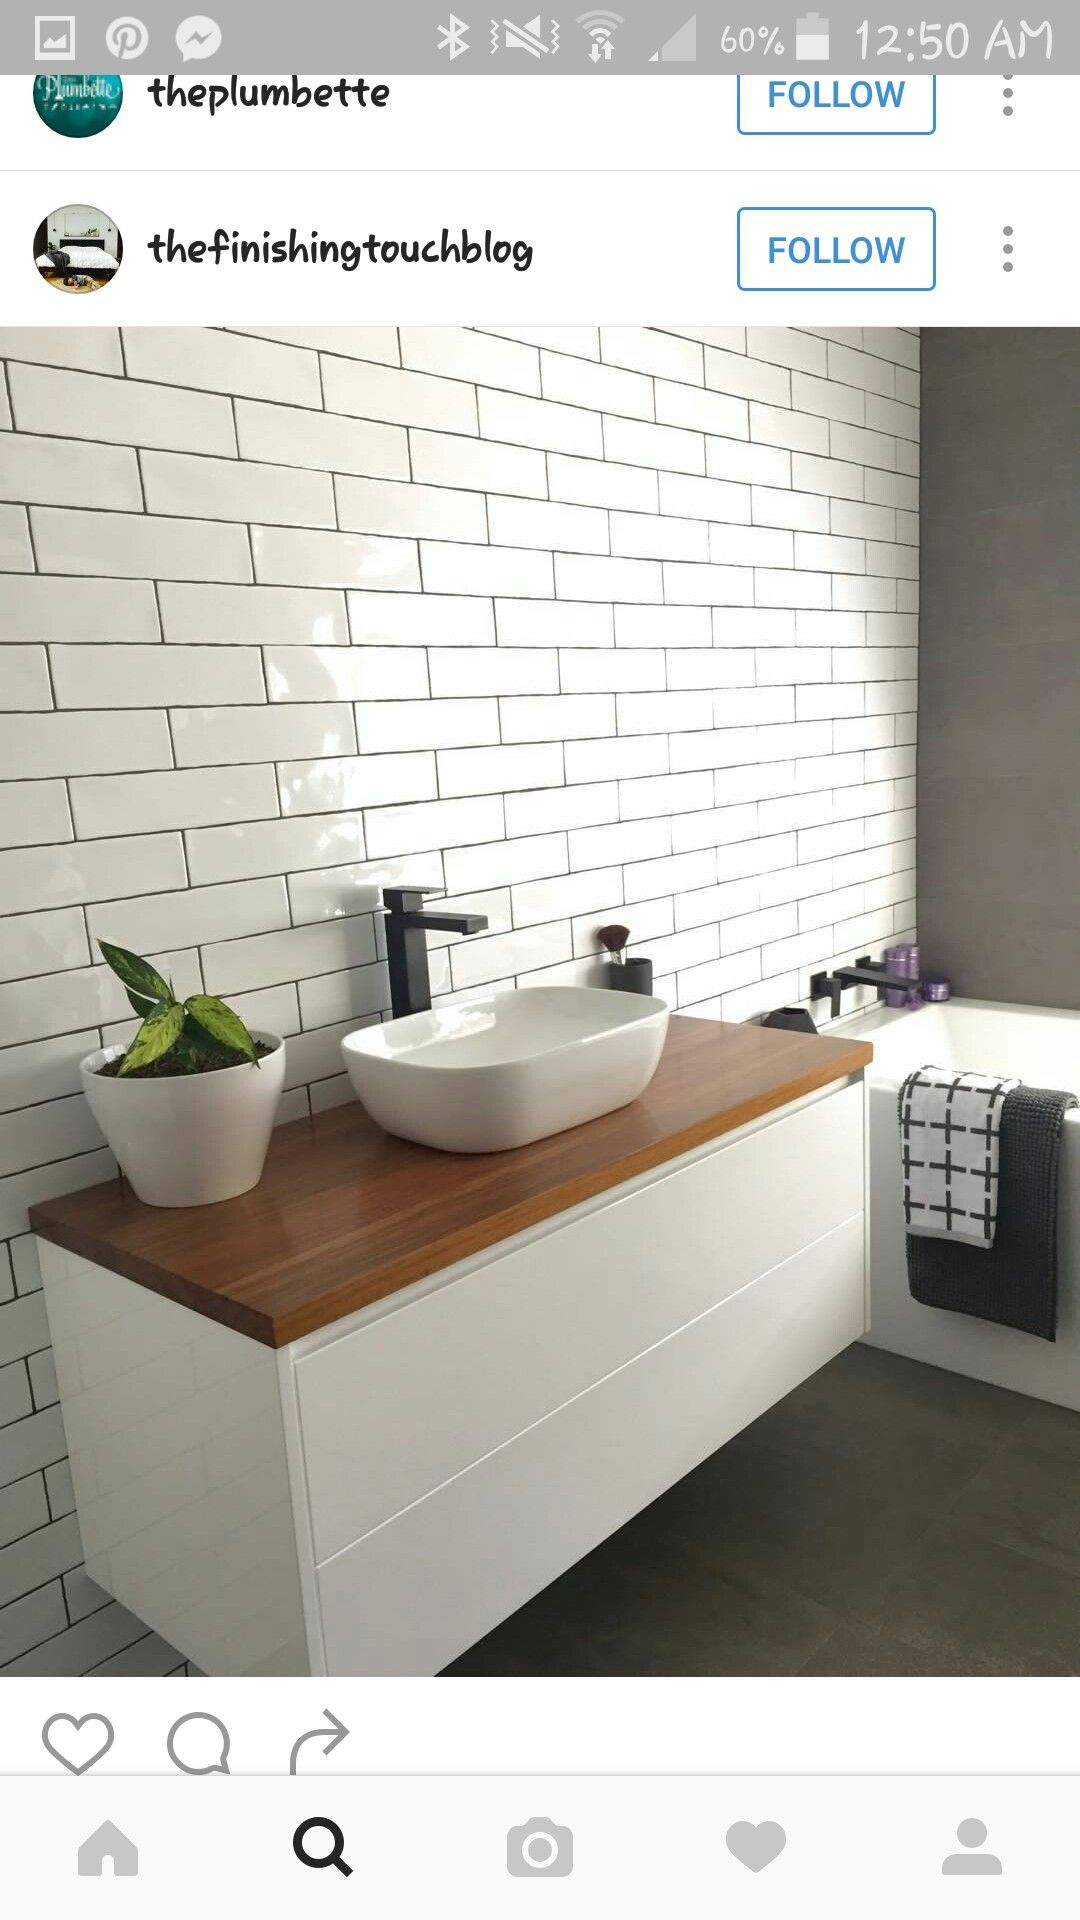 Pin by Oliwia Hasiuk on Dom | Pinterest | Bathroom designs, Mid ...